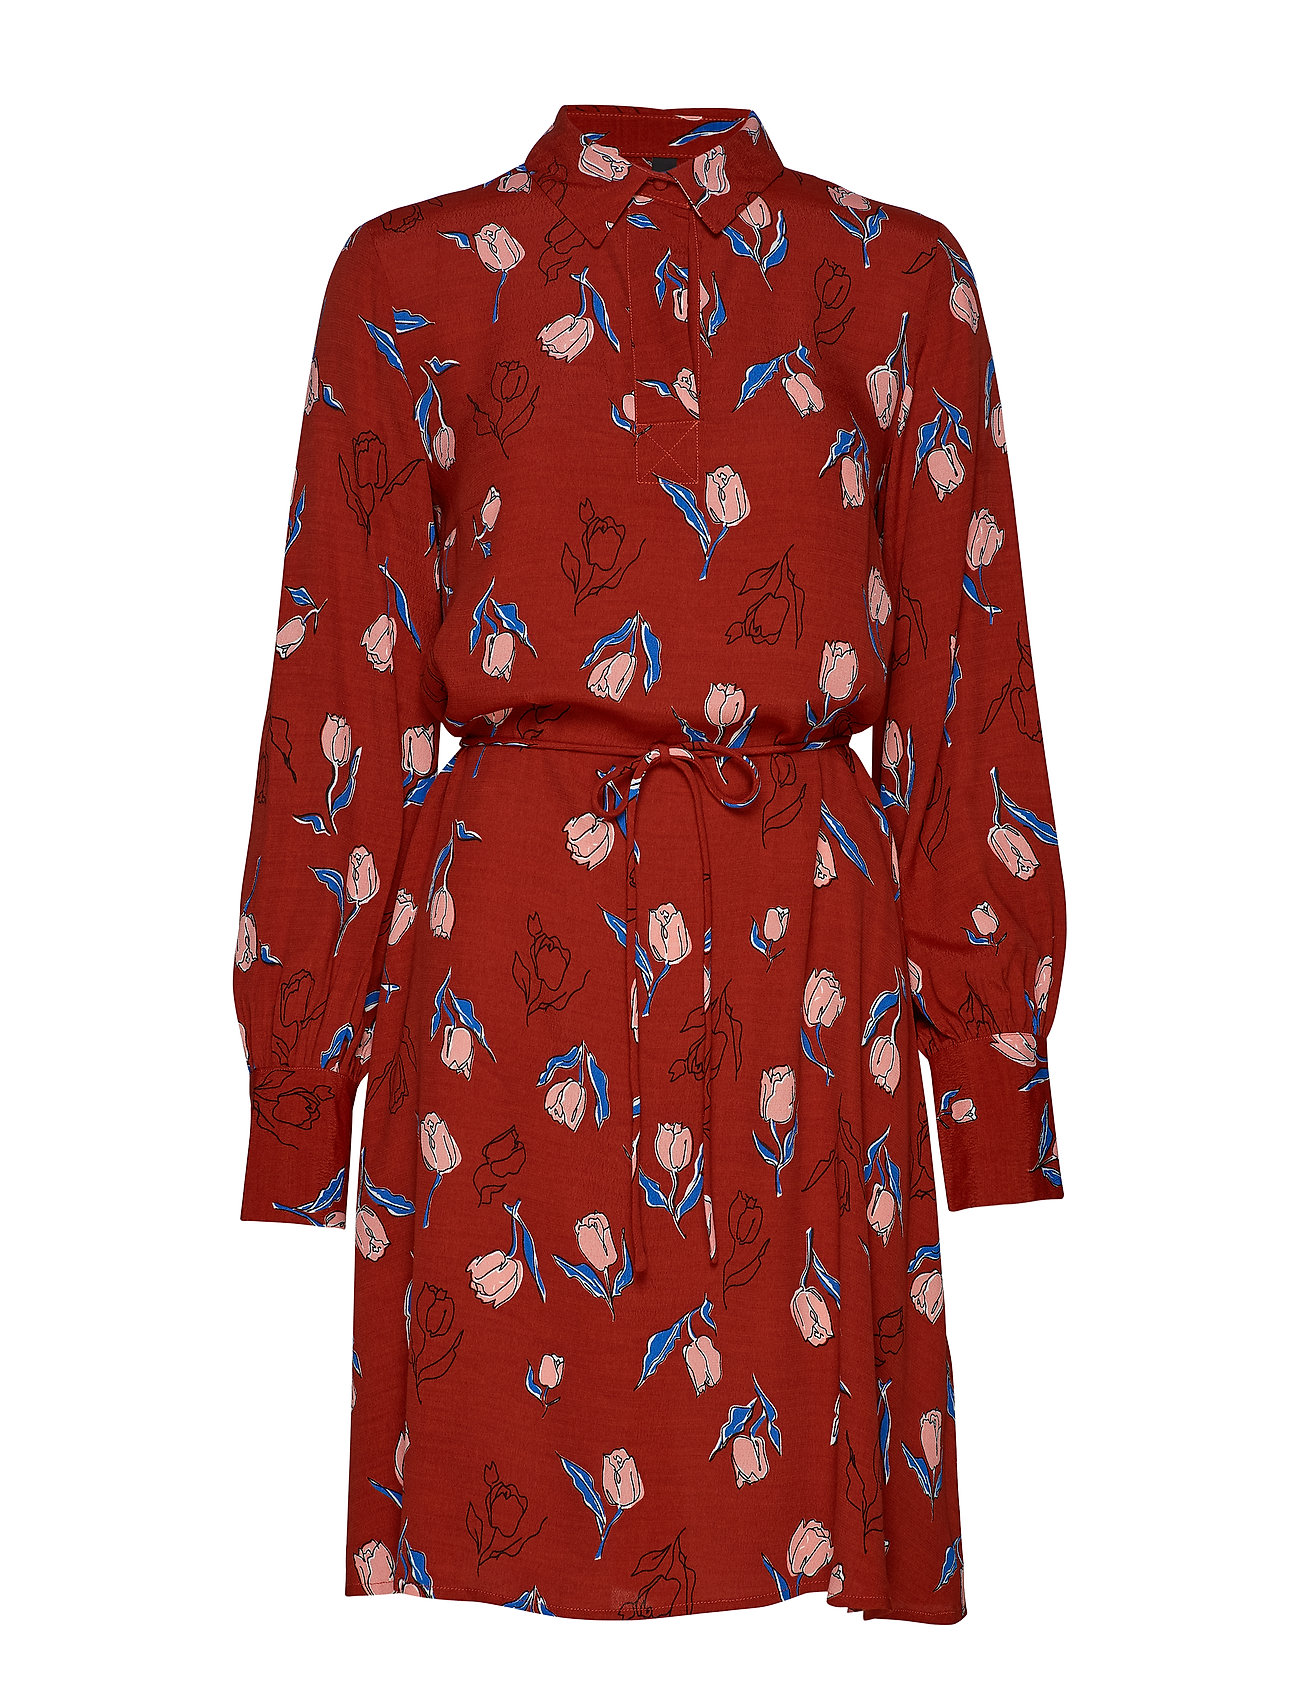 YAS YASELANOR LS SHIRT DRESS - ROOIBOS TEA